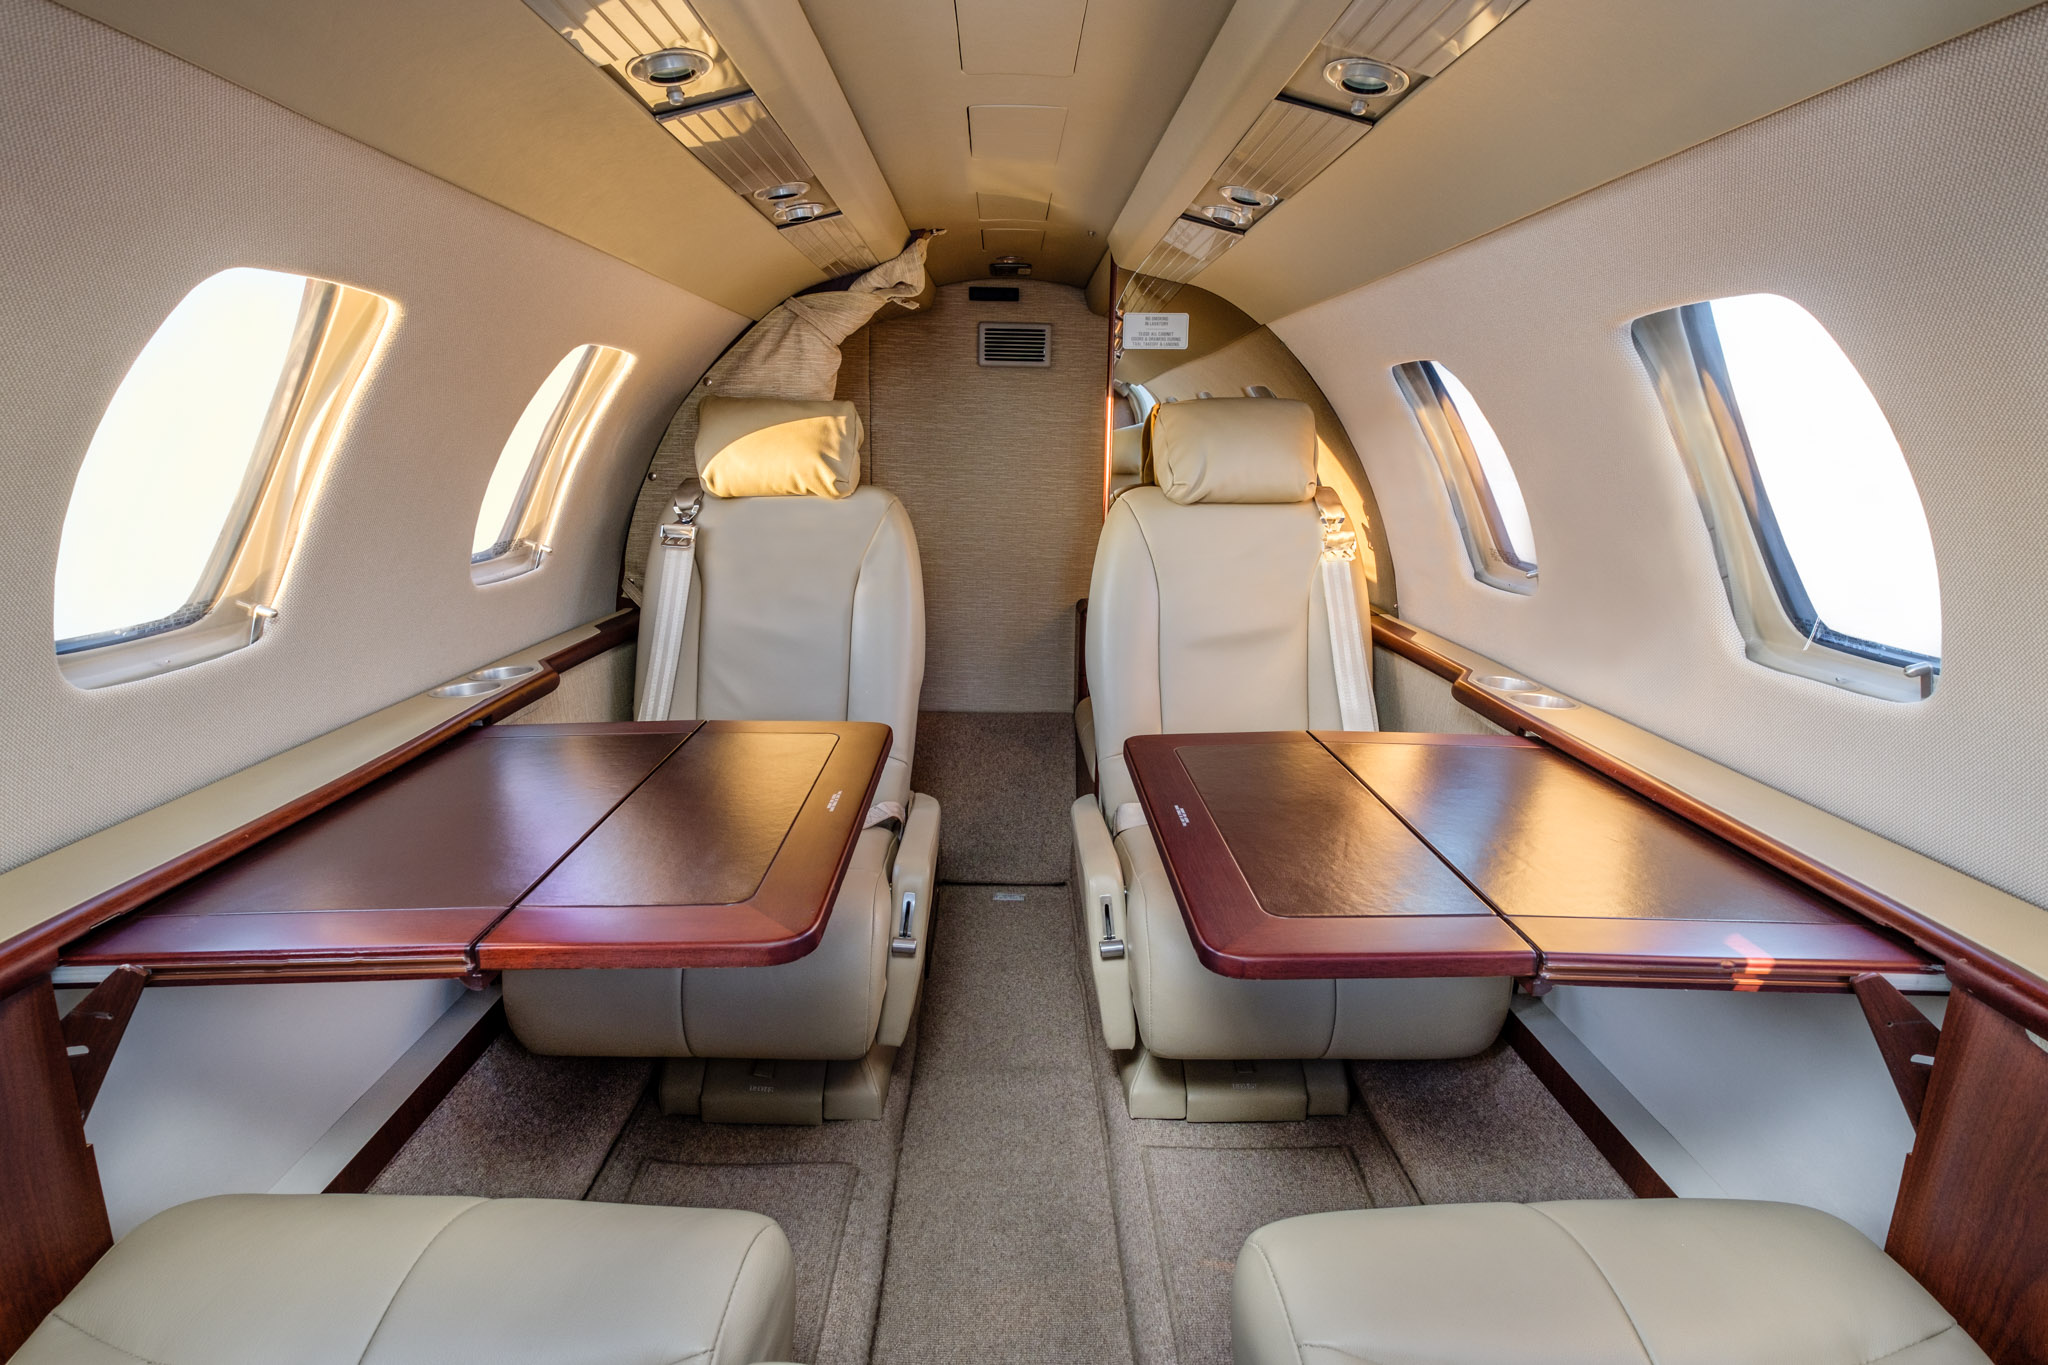 Private charter plane main cabin with pull-out tables